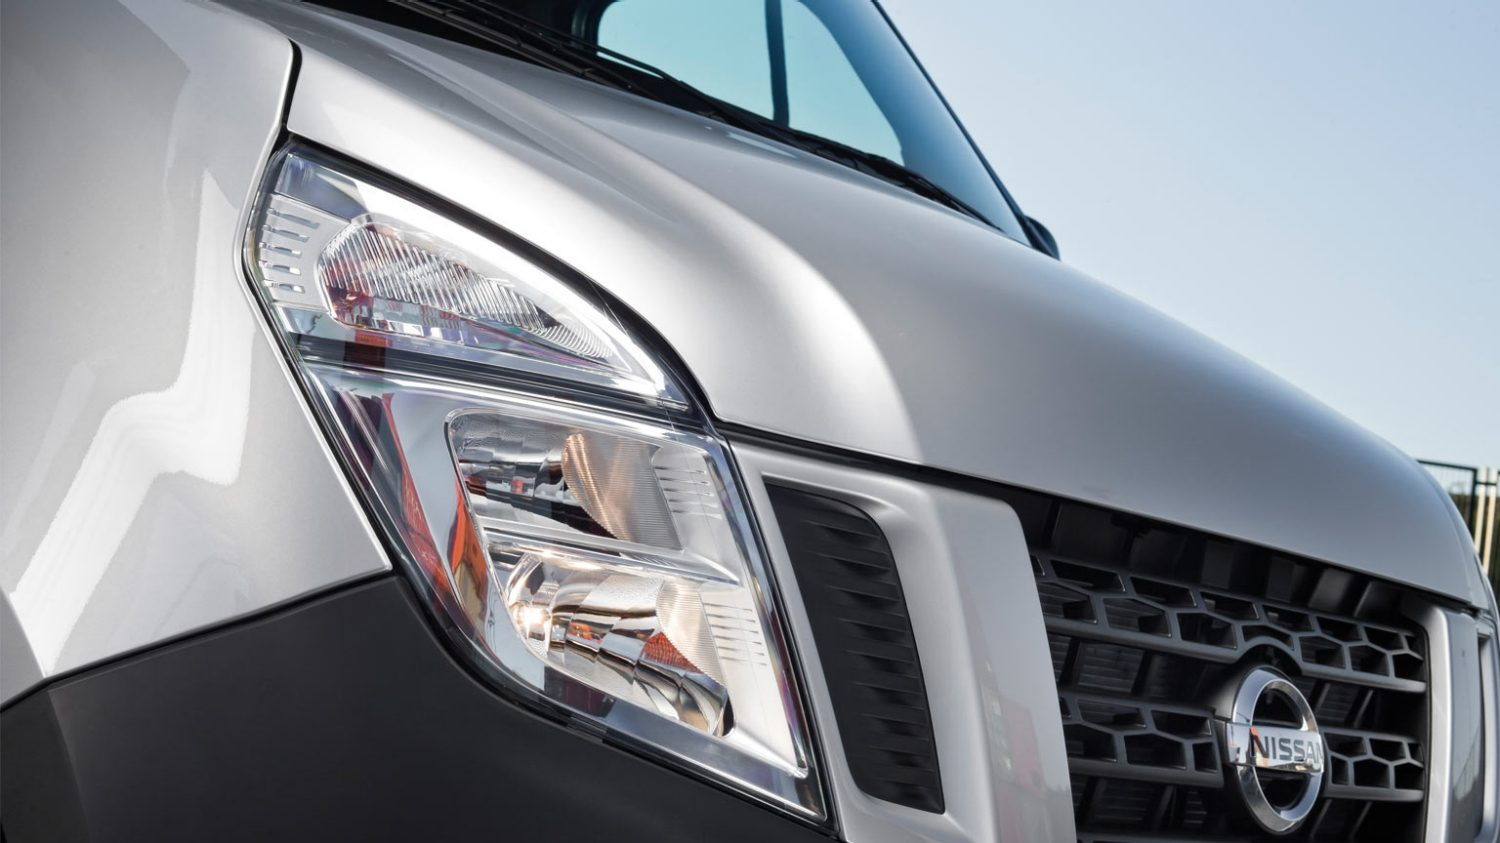 Nissan NV400 - Spacial and practical - Auto-dip headlamps